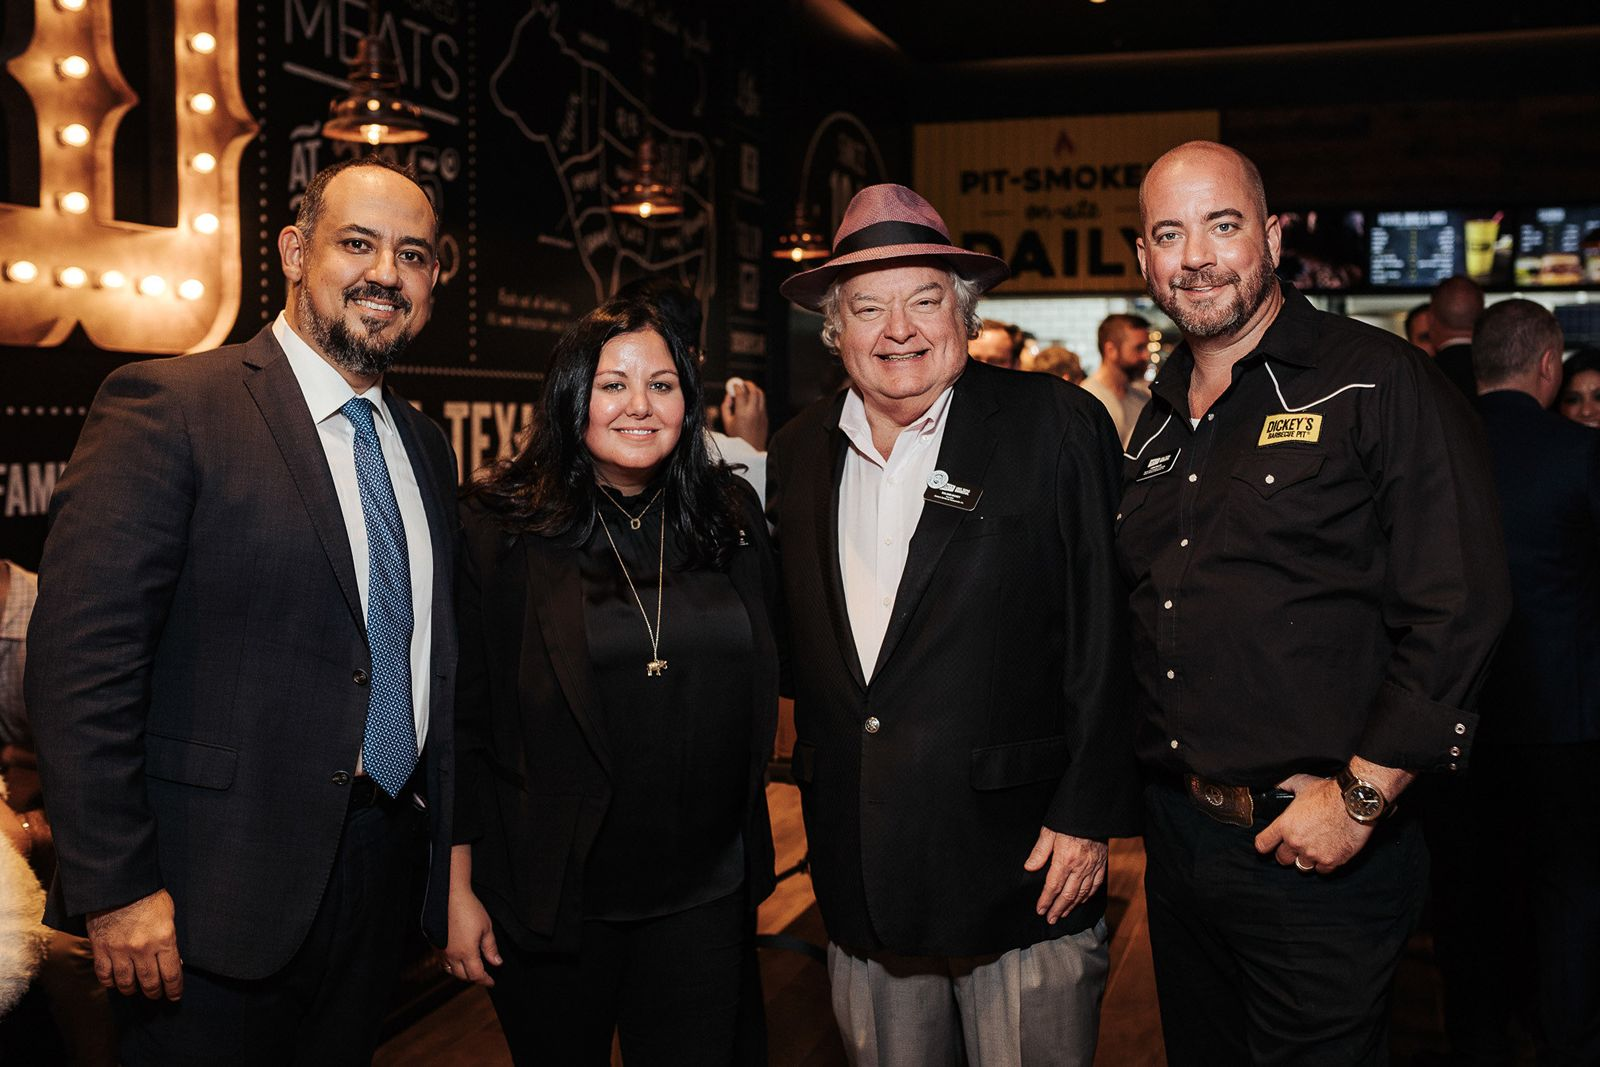 Laura Rea Dickey, CEO of Dickey's Barbecue Restaurants, Inc.; Mr. Dickey, Founder of Dickey's Barbecue Pit; Chris Kelley, Dean of Barbecue University and Youssef El Habbal, CEO of Serenity Hospitality at the first Dickey's Barbecue Pit international opening in Abu Dhabi.